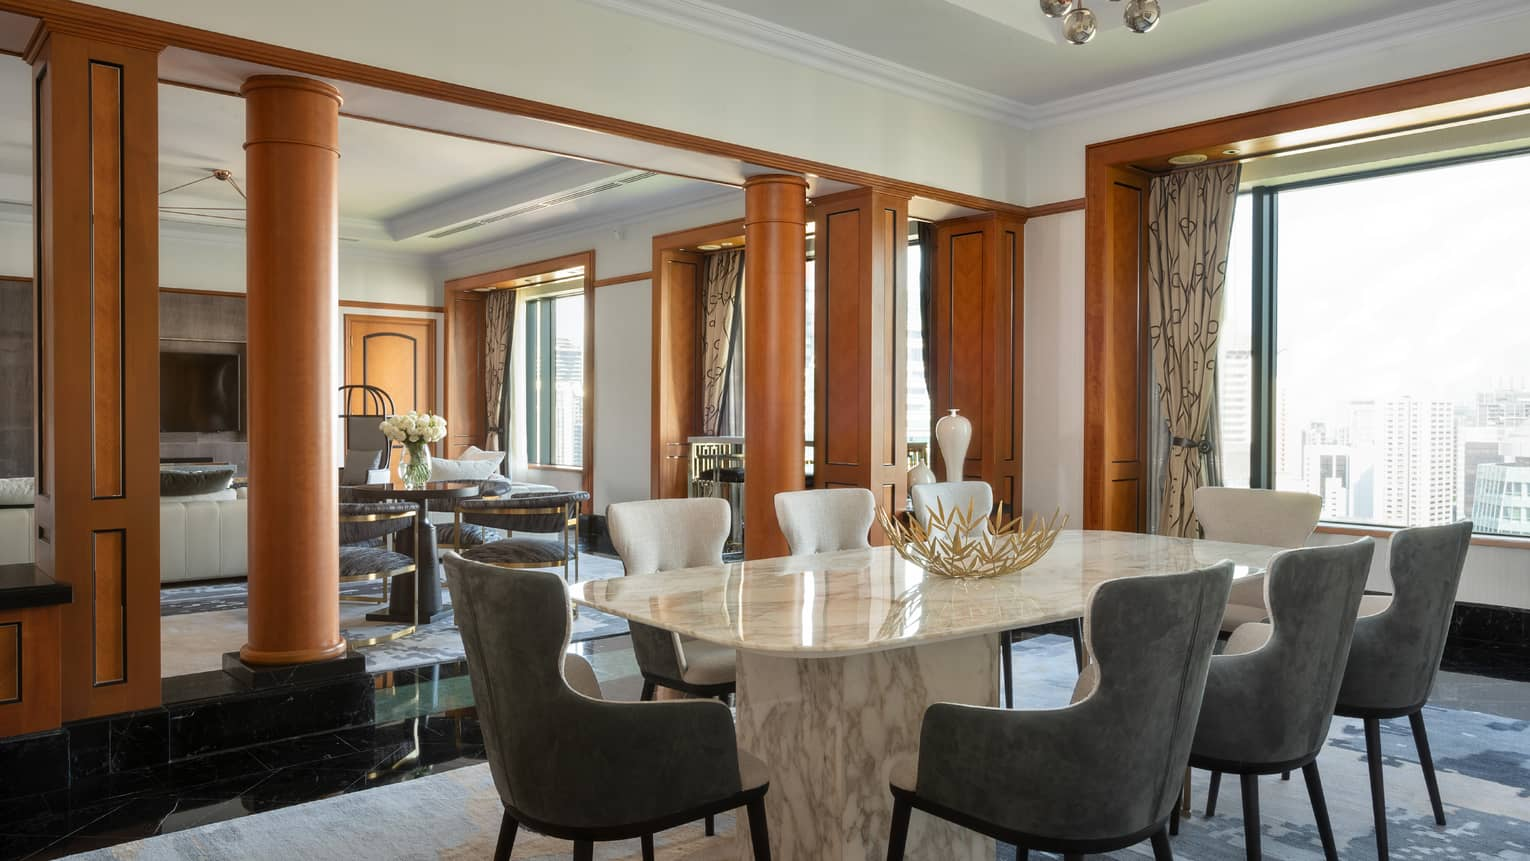 Presidential suite dining area with marble table and floor-to-ceiling windows